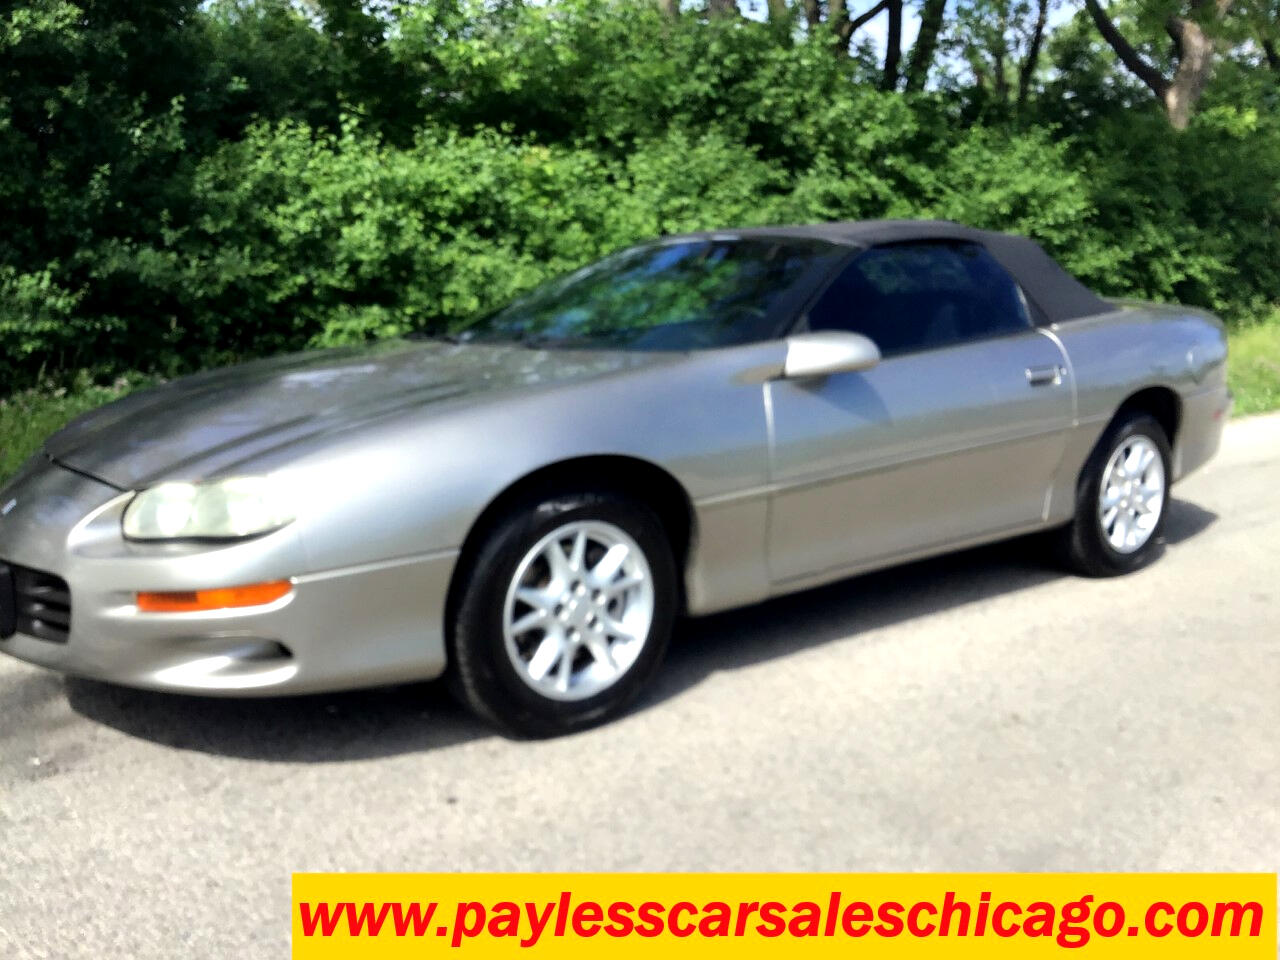 used 2001 chevrolet camaro 2dr convertible for sale in blue island il 60406 payless car sales blue island il 60406 payless car sales